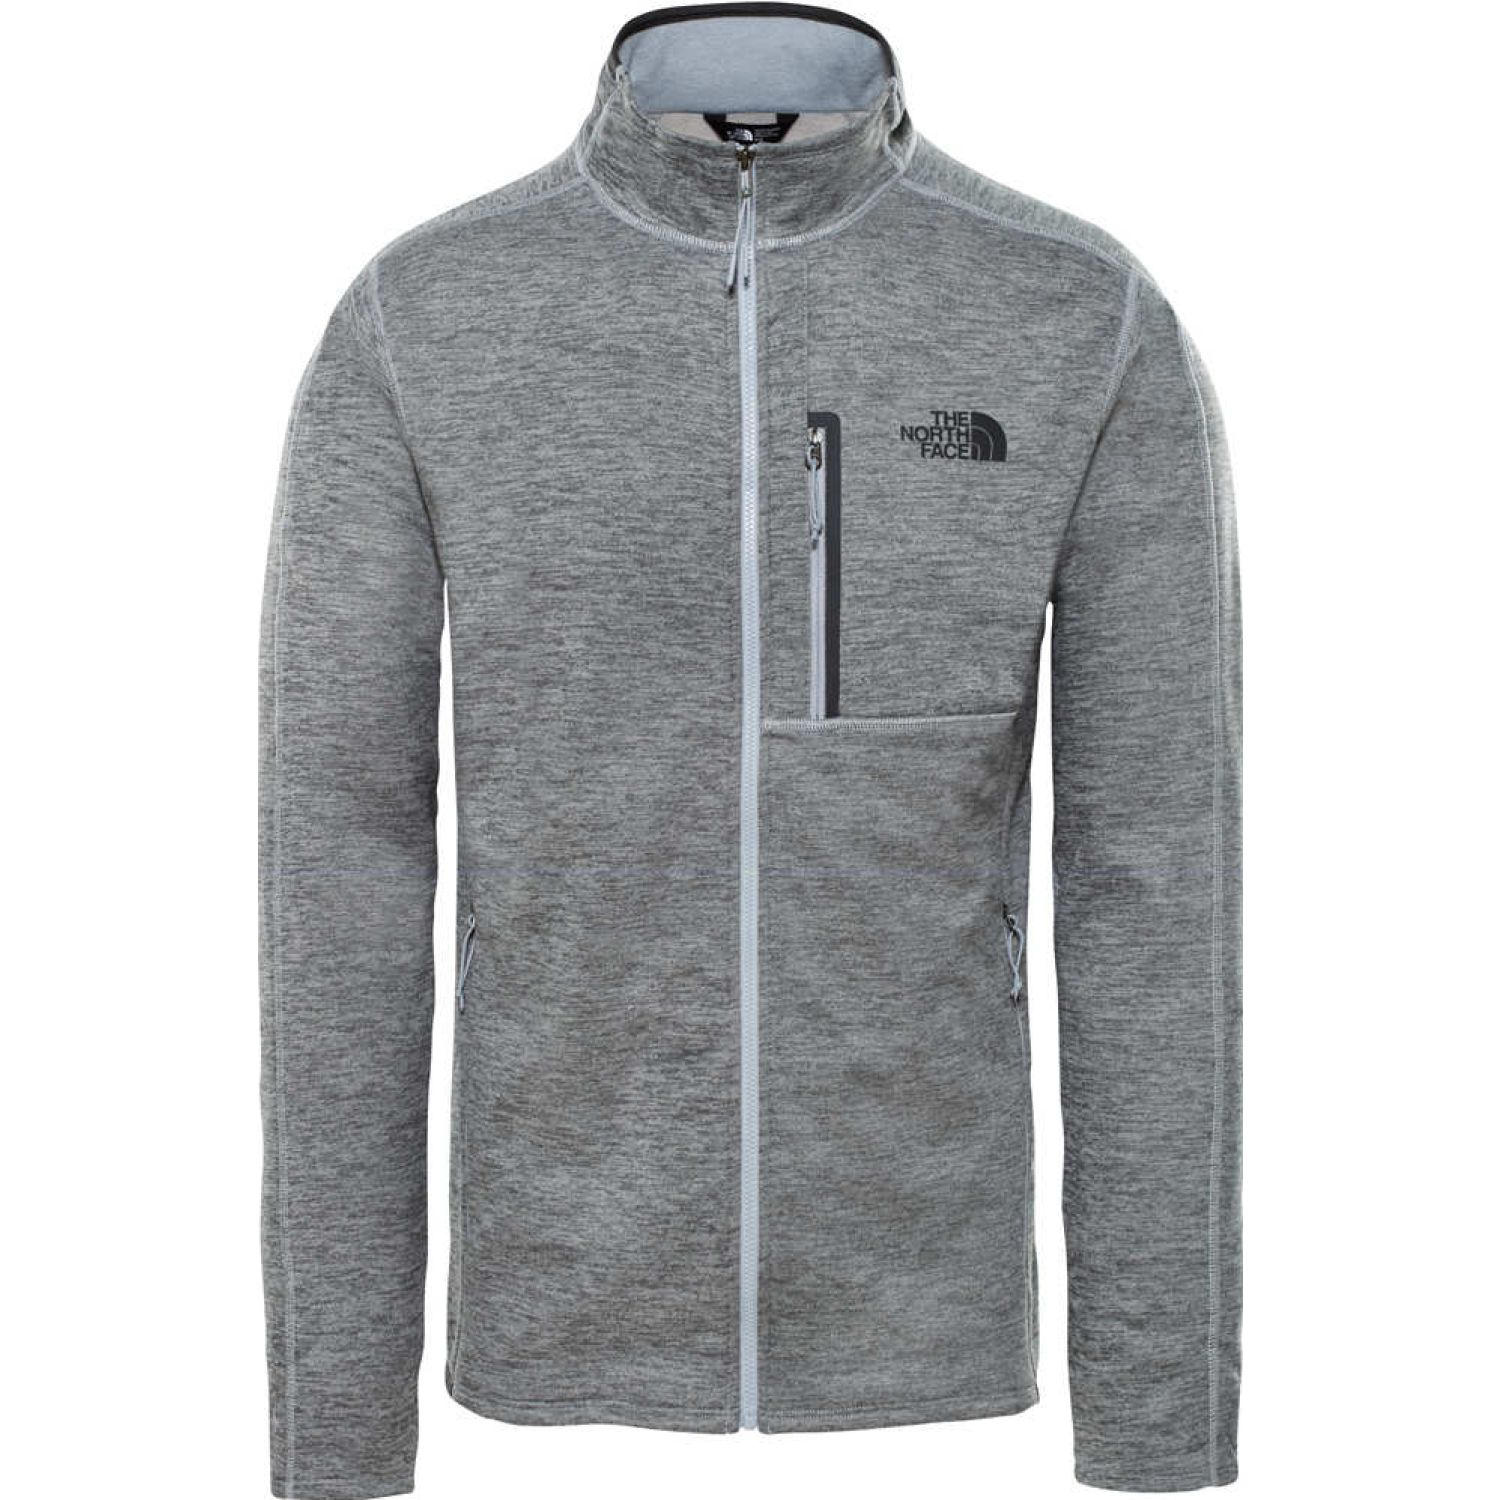 The North Face m canyonlands full zip Gris Pullovers